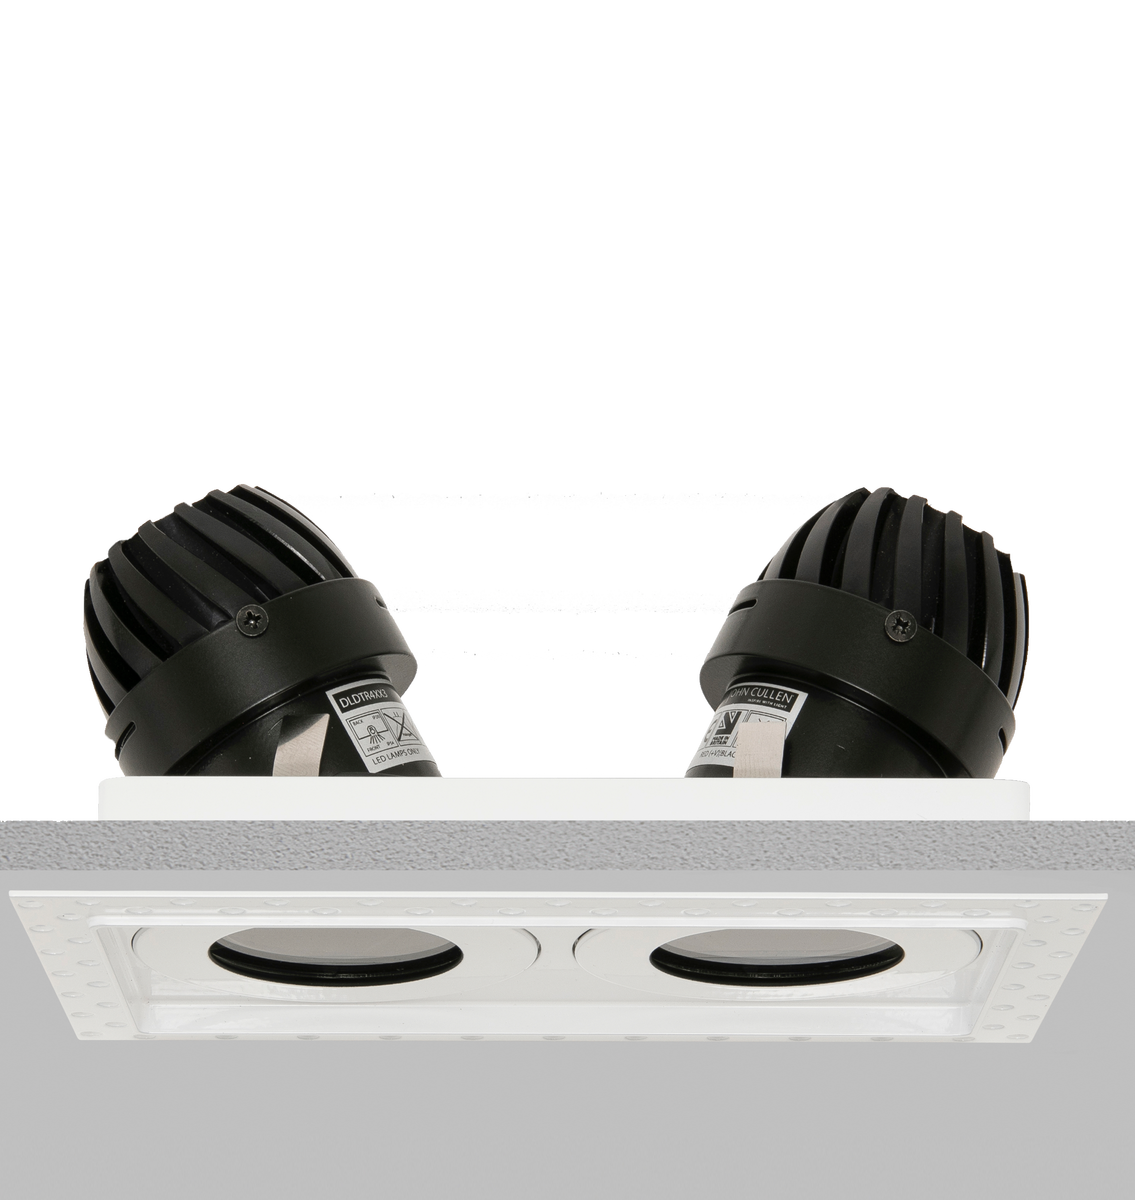 Square Double 50 IP Downlight main image